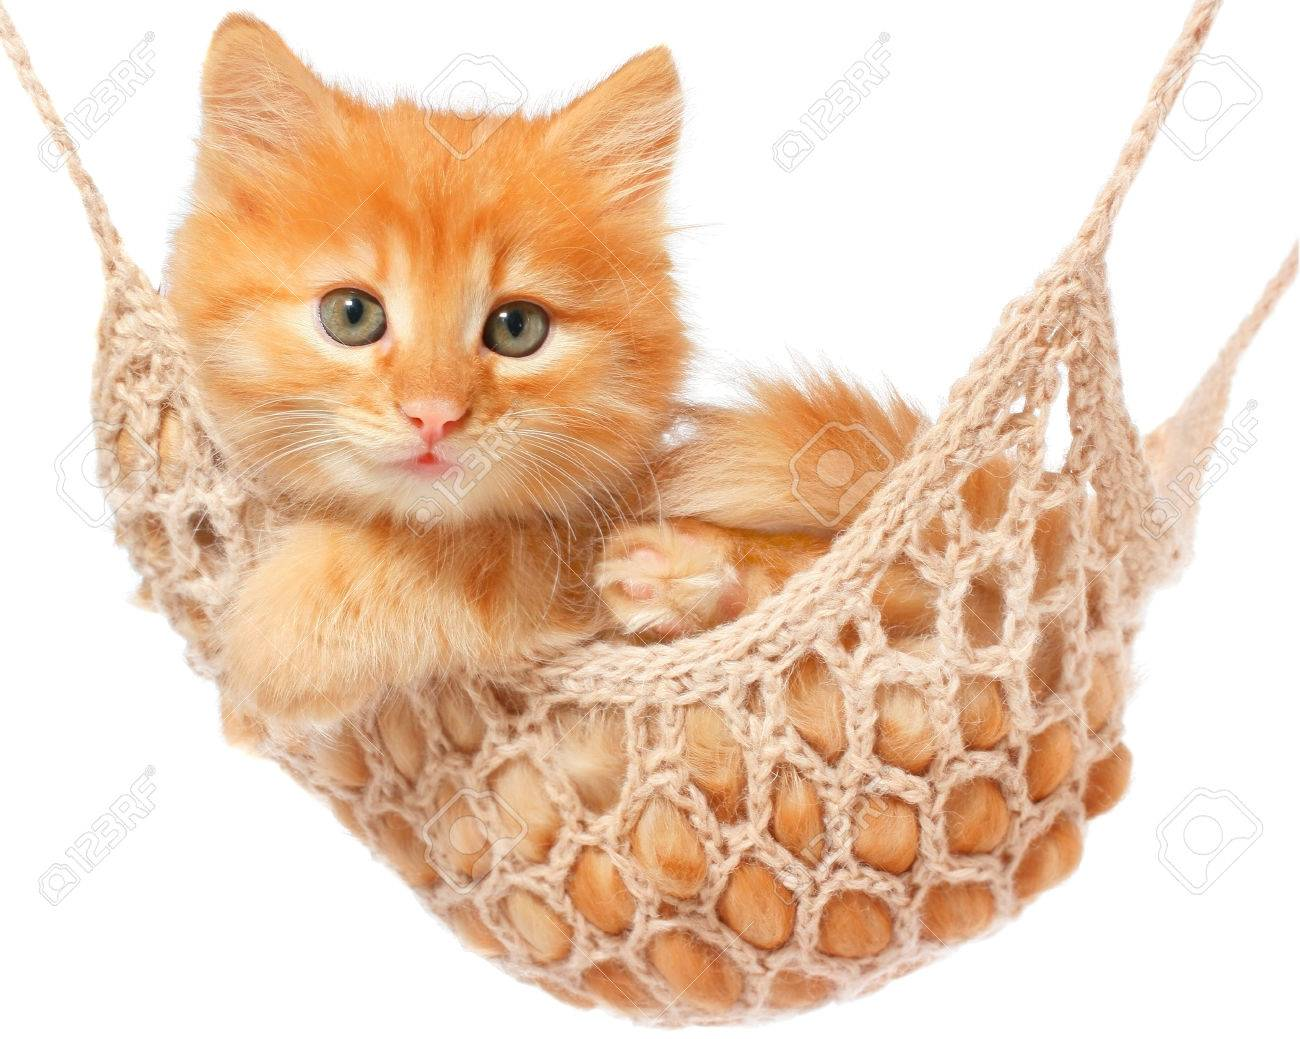 Cute red haired kitten lay in hammock on a white background. - 50652363